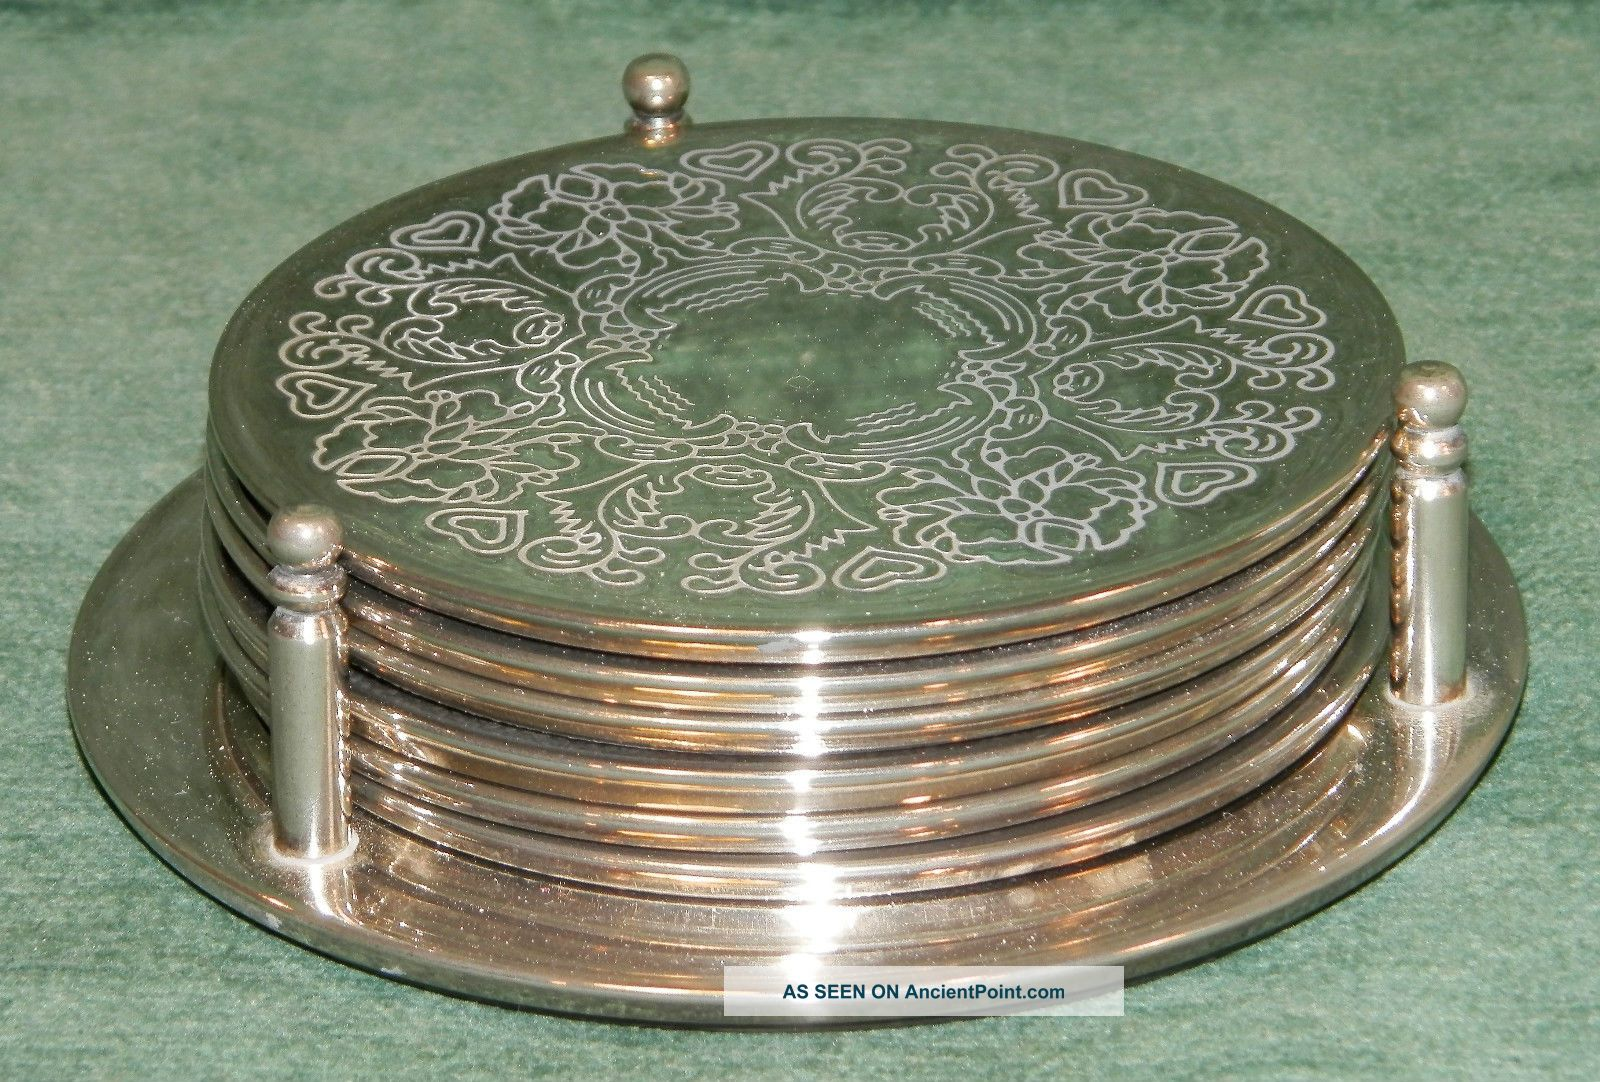 6 X Silver Plated Drinks Coasters & Bottle Stand 9.  5cm Diameter - Chased Dishes & Coasters photo